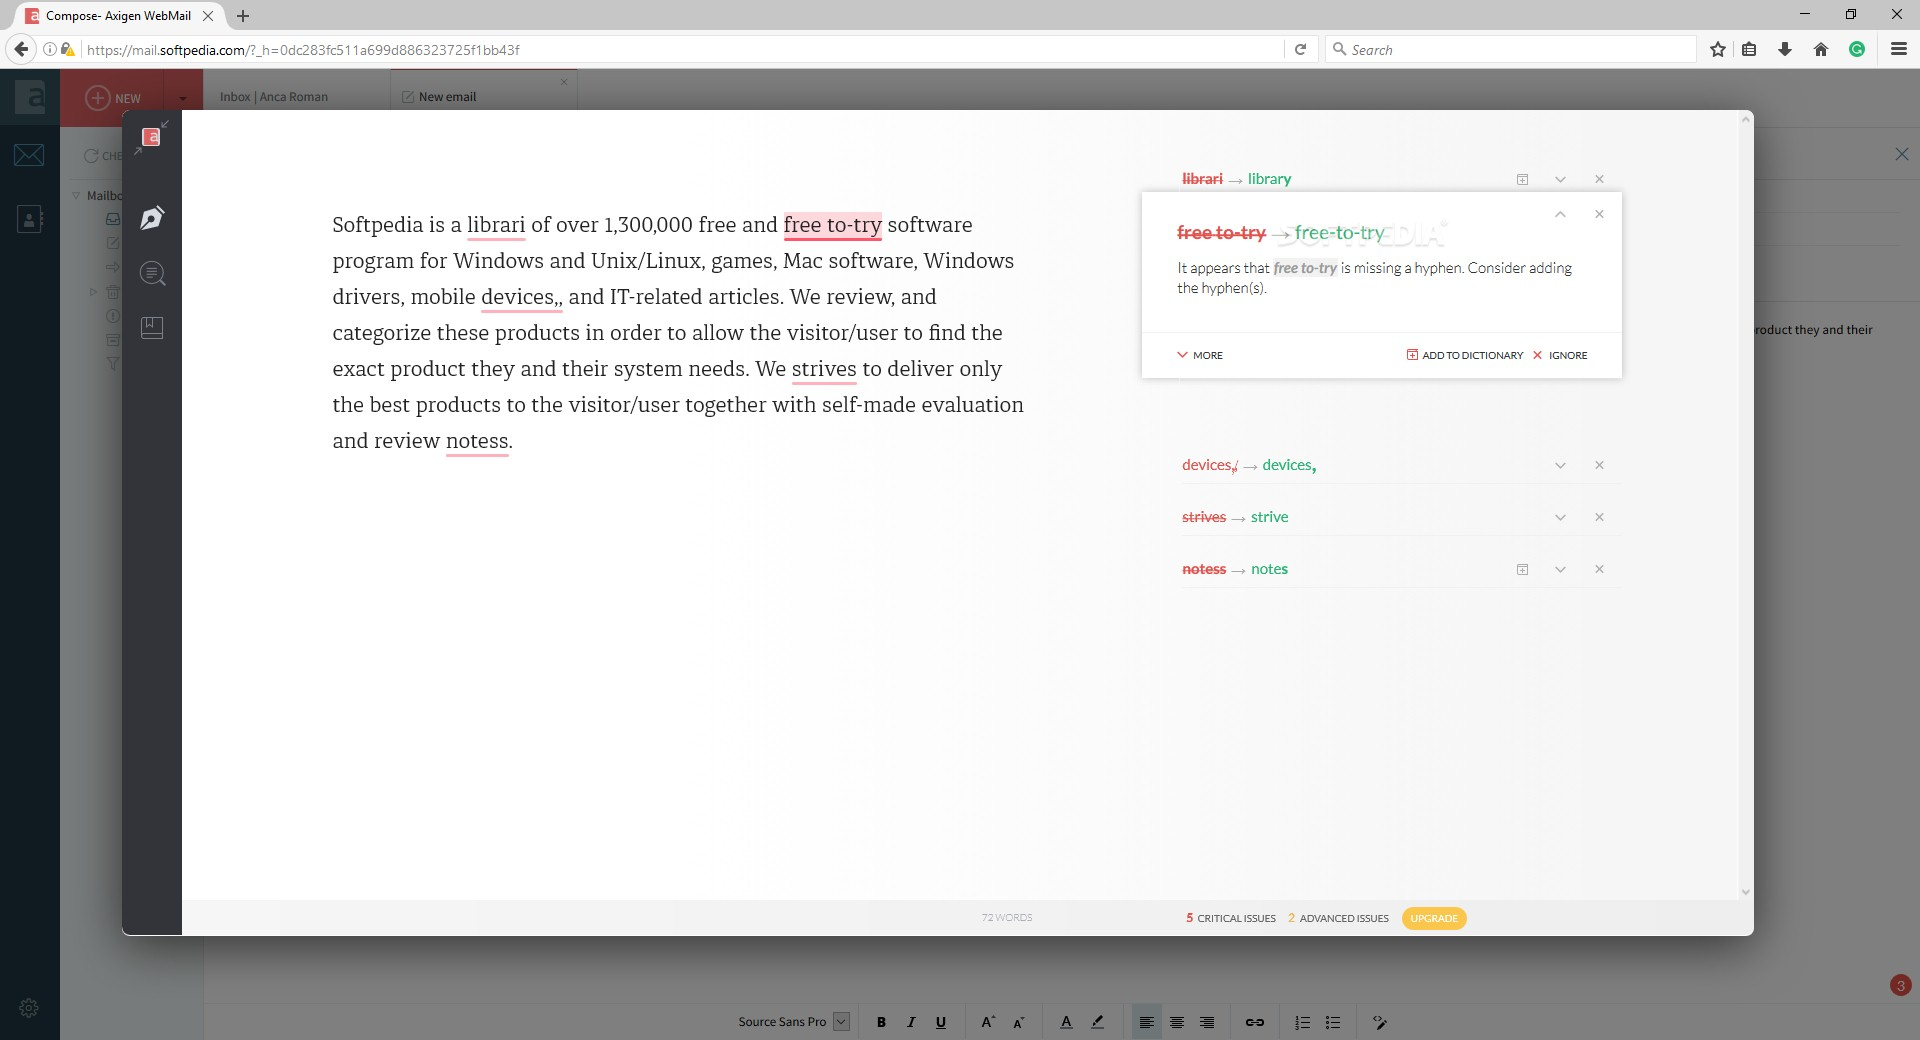 The Ultimate Guide To Grammarly For Firefox